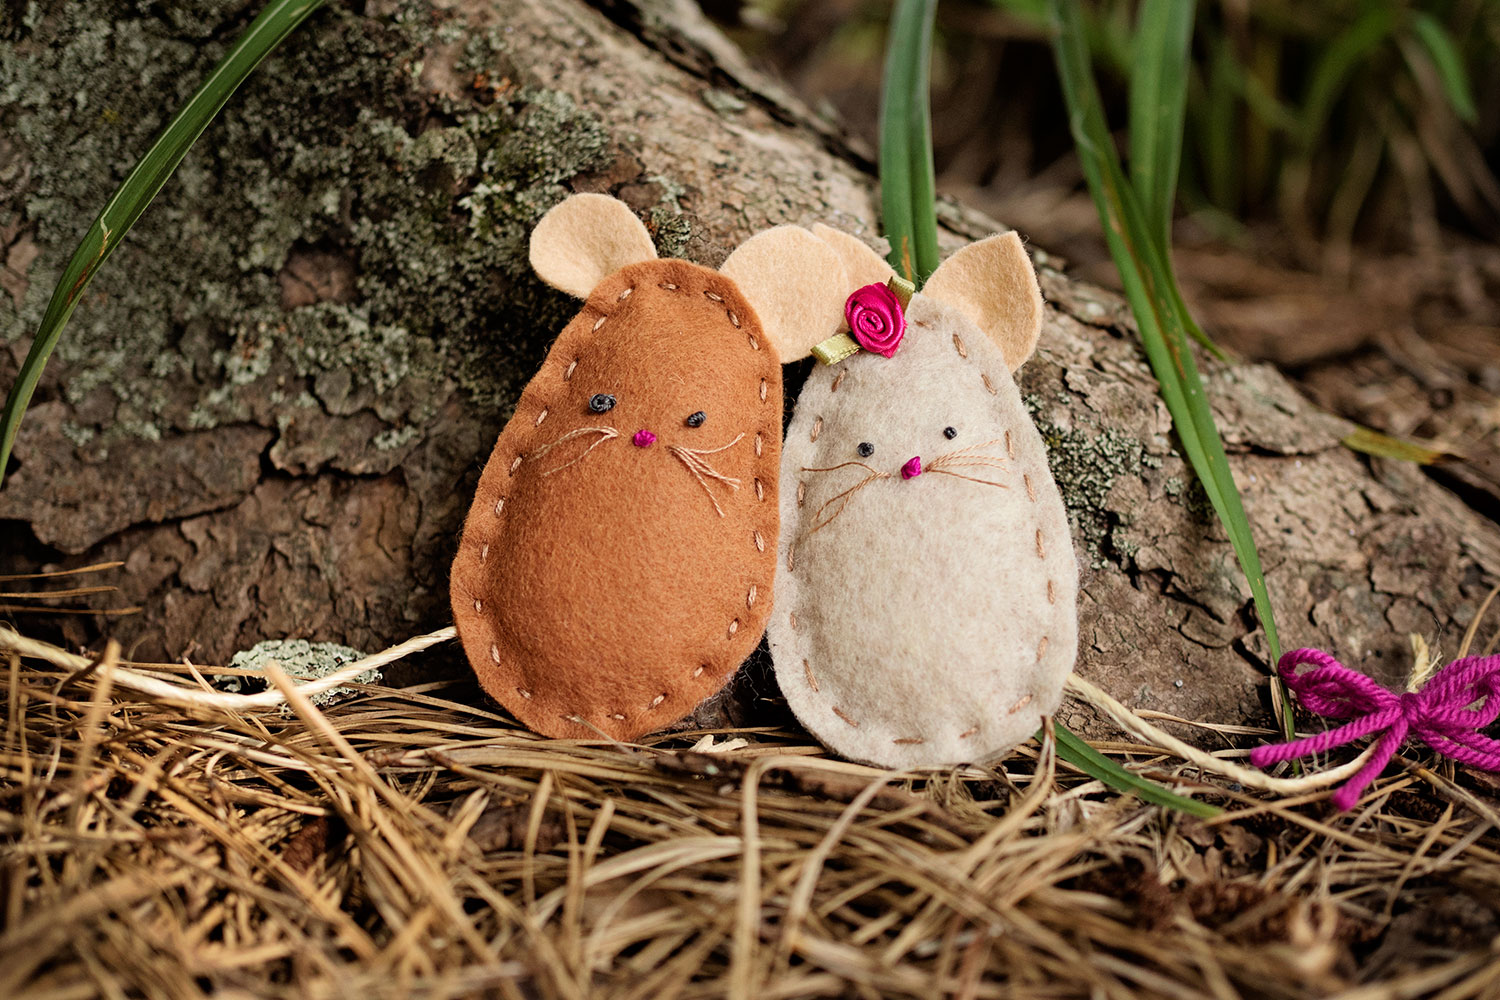 Two tan colored felt craft mice posed in the pine straw leaning against a tree